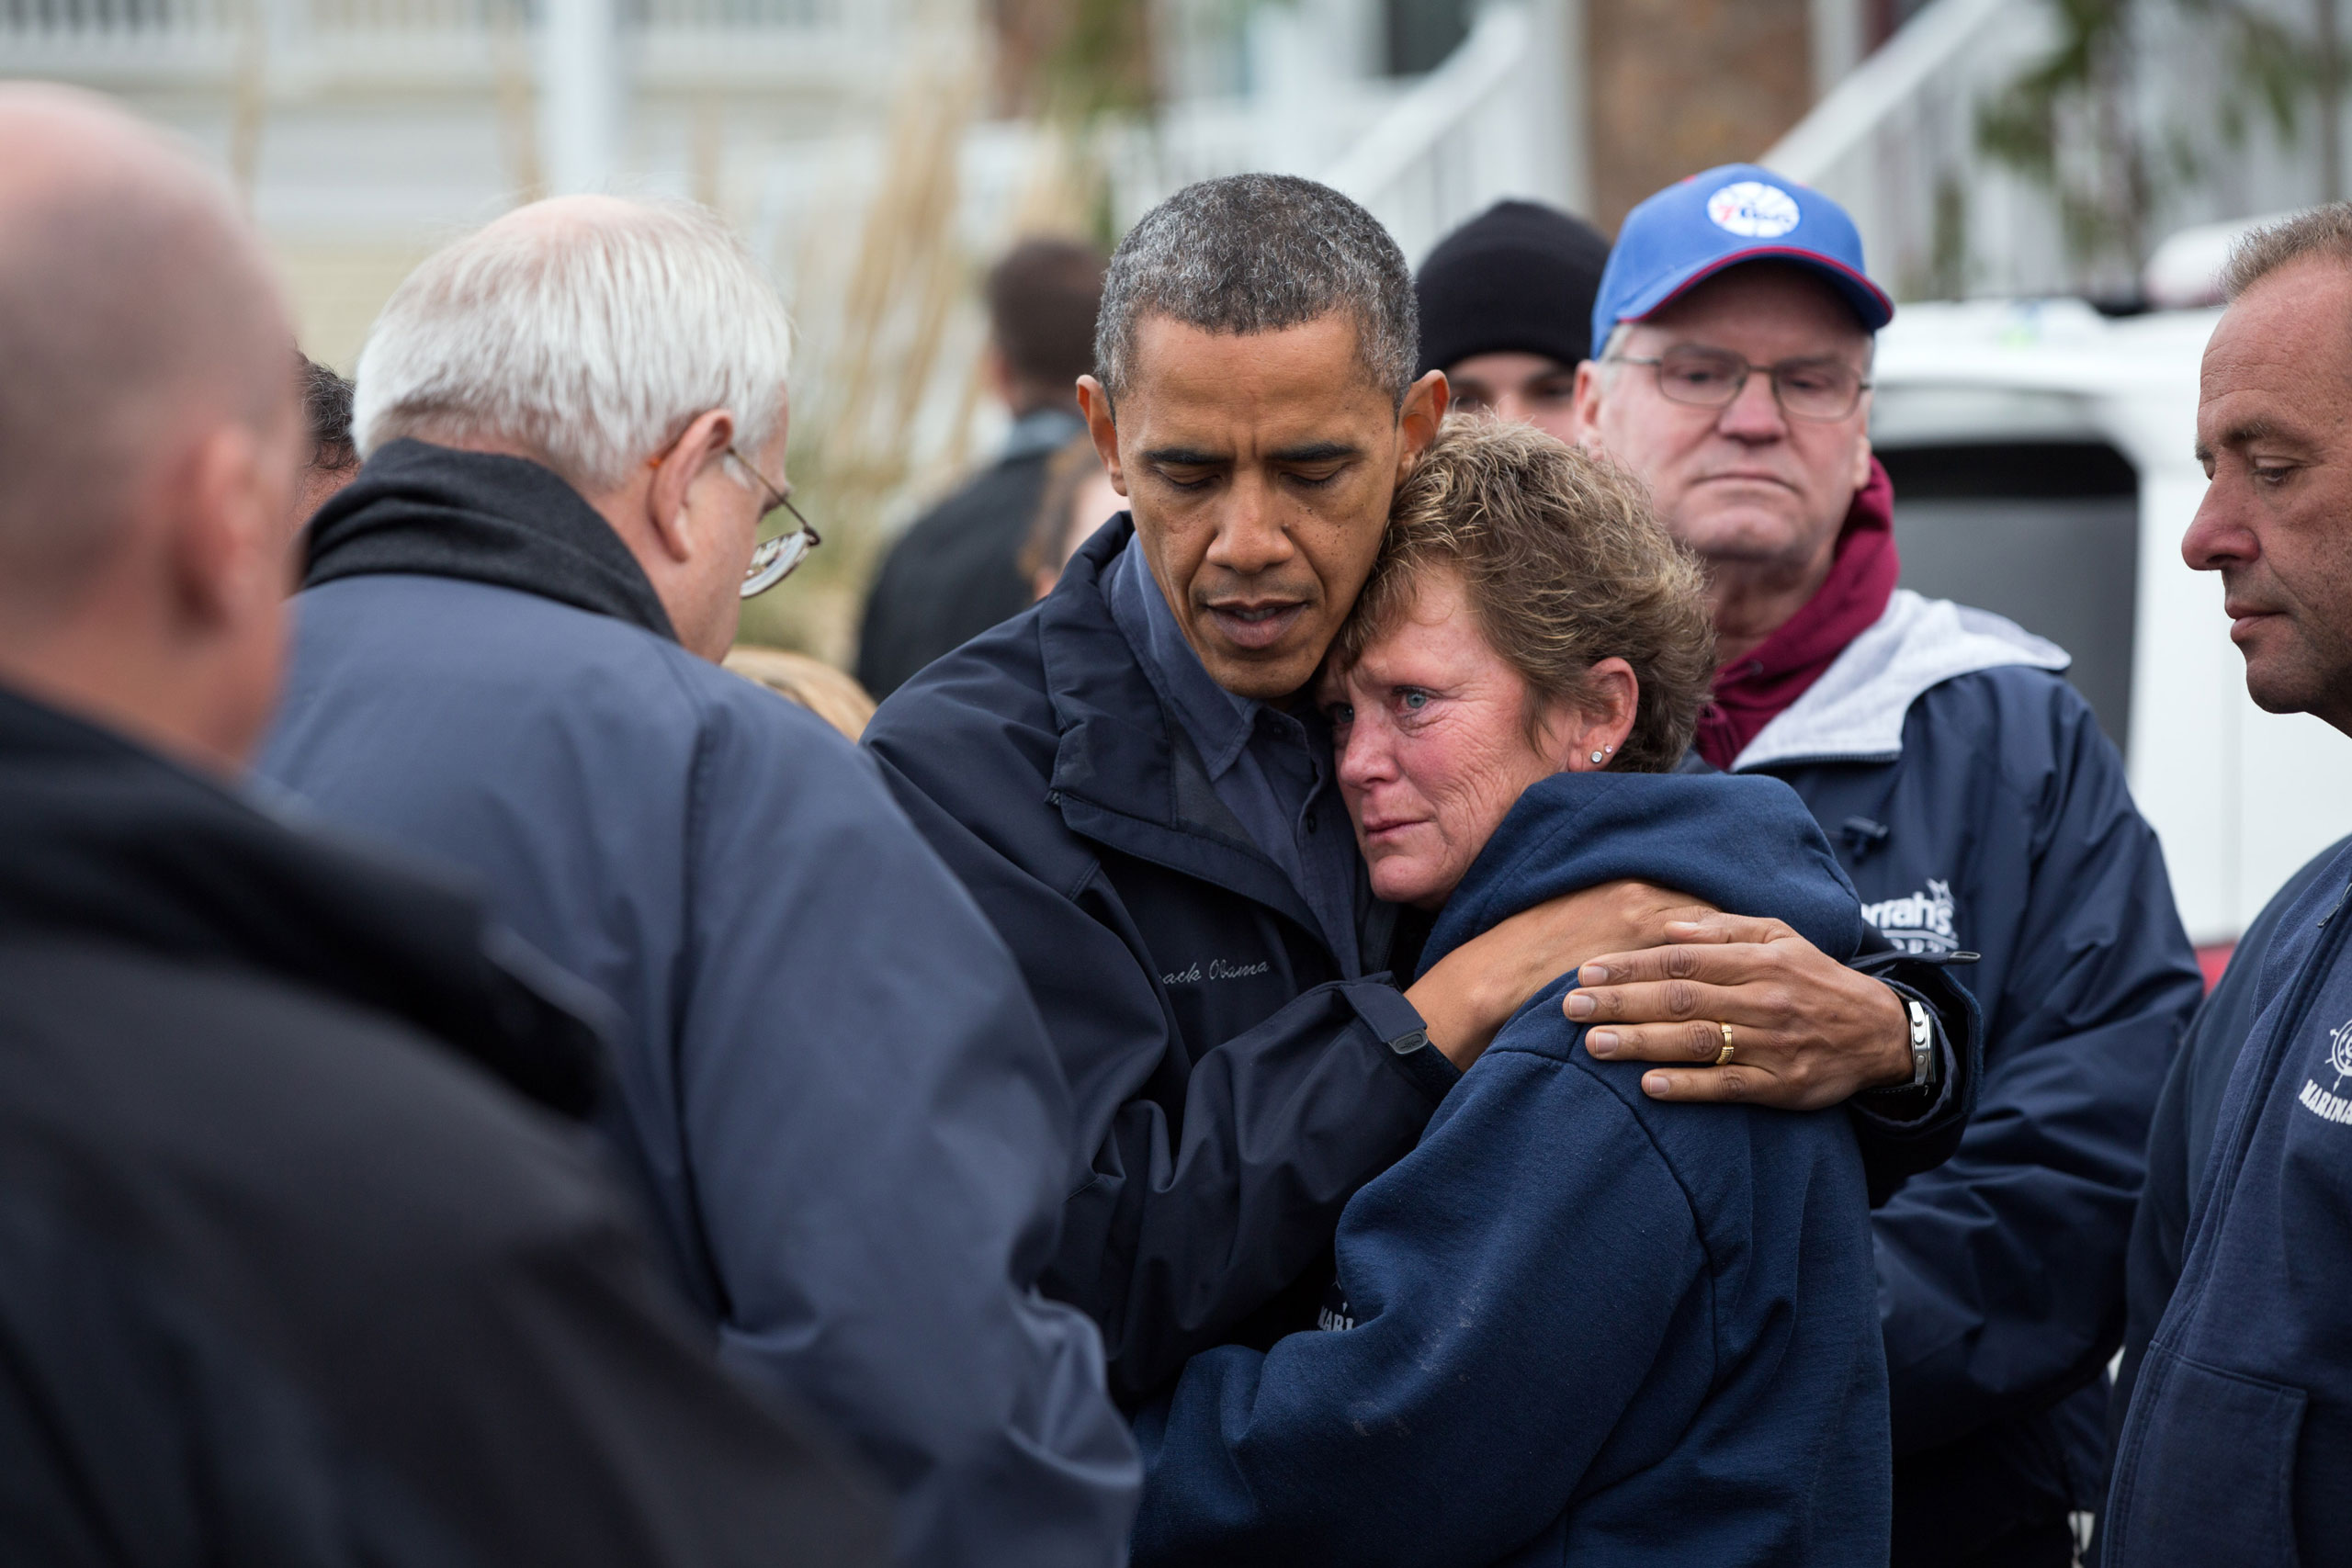 President Barack Obama talks with Donna Vanzant, owner of the North Point Marina in Brigantine, New Jersey, Oct. 31, 2012. The President was surveying damage caused by Hurricane Sandy.